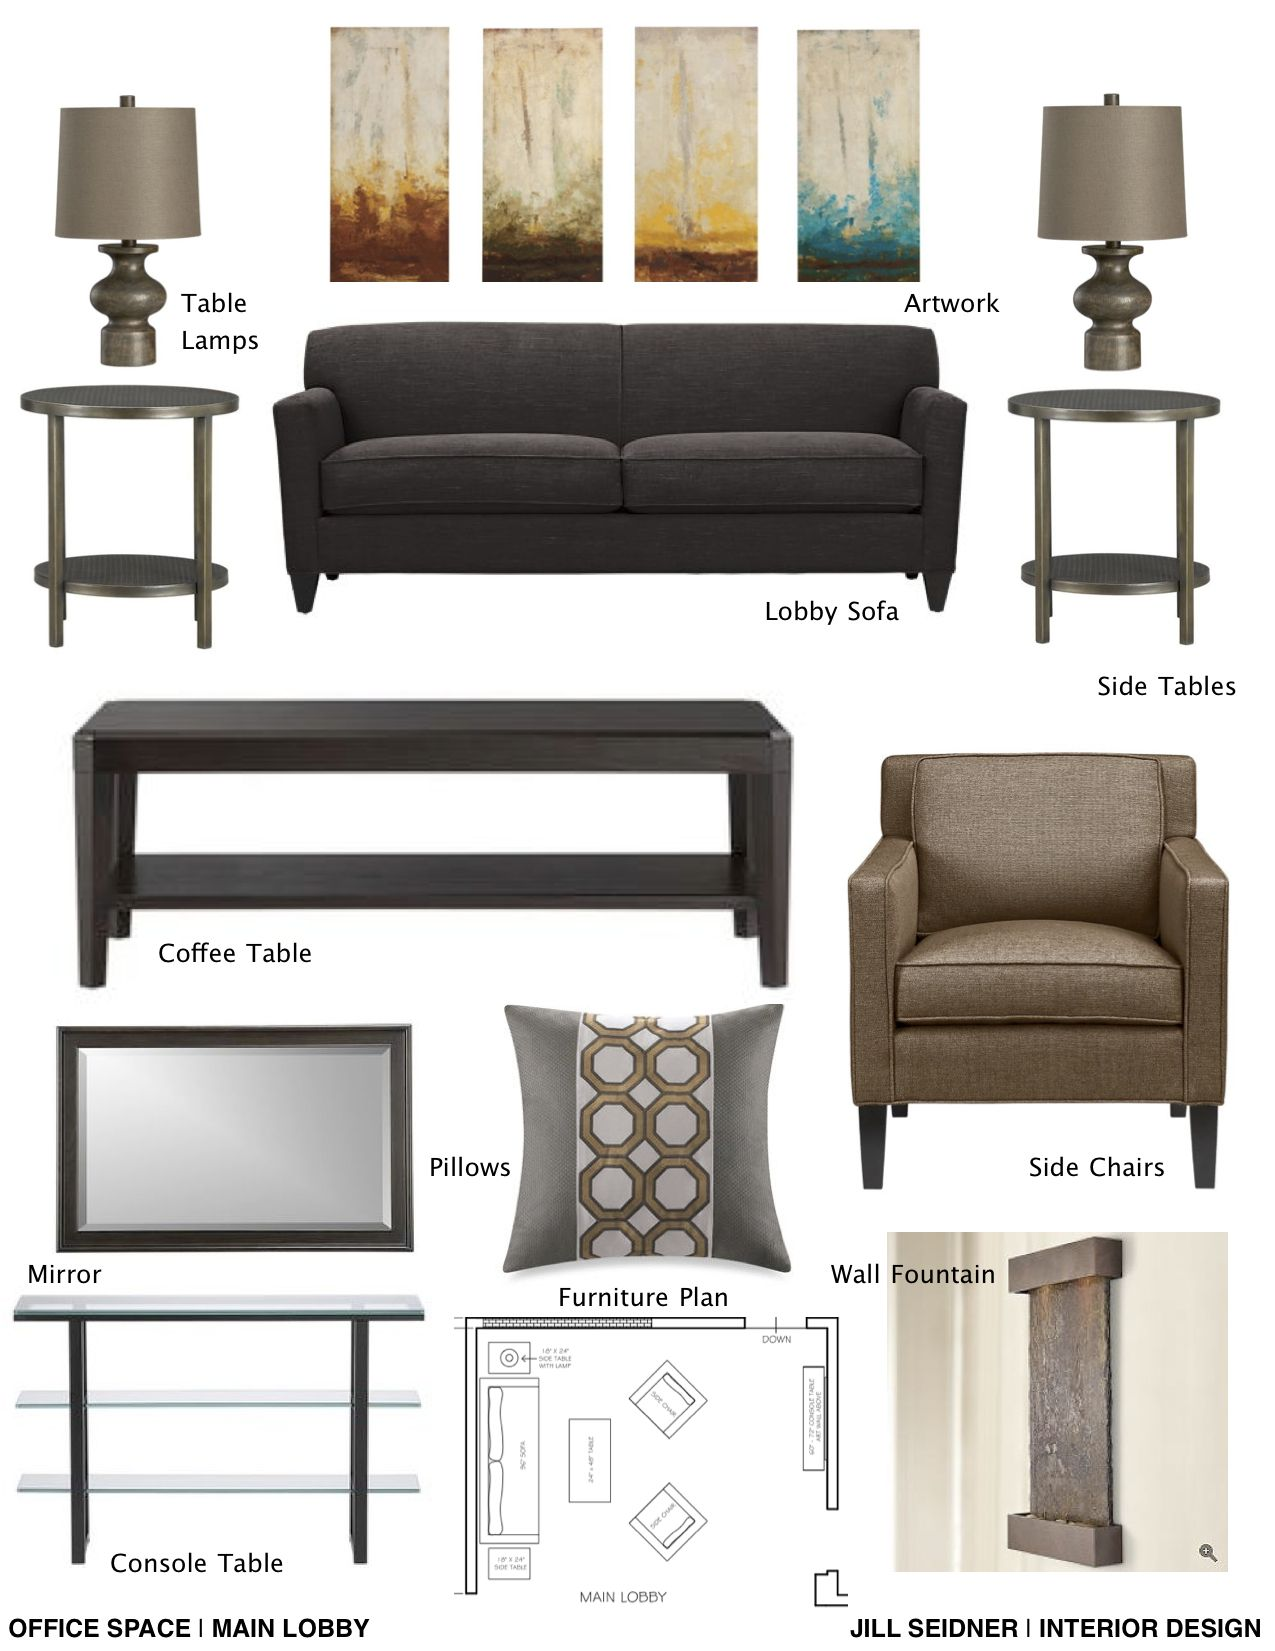 Professional Room Designer: Concept Board For Therapist Office. (With Images